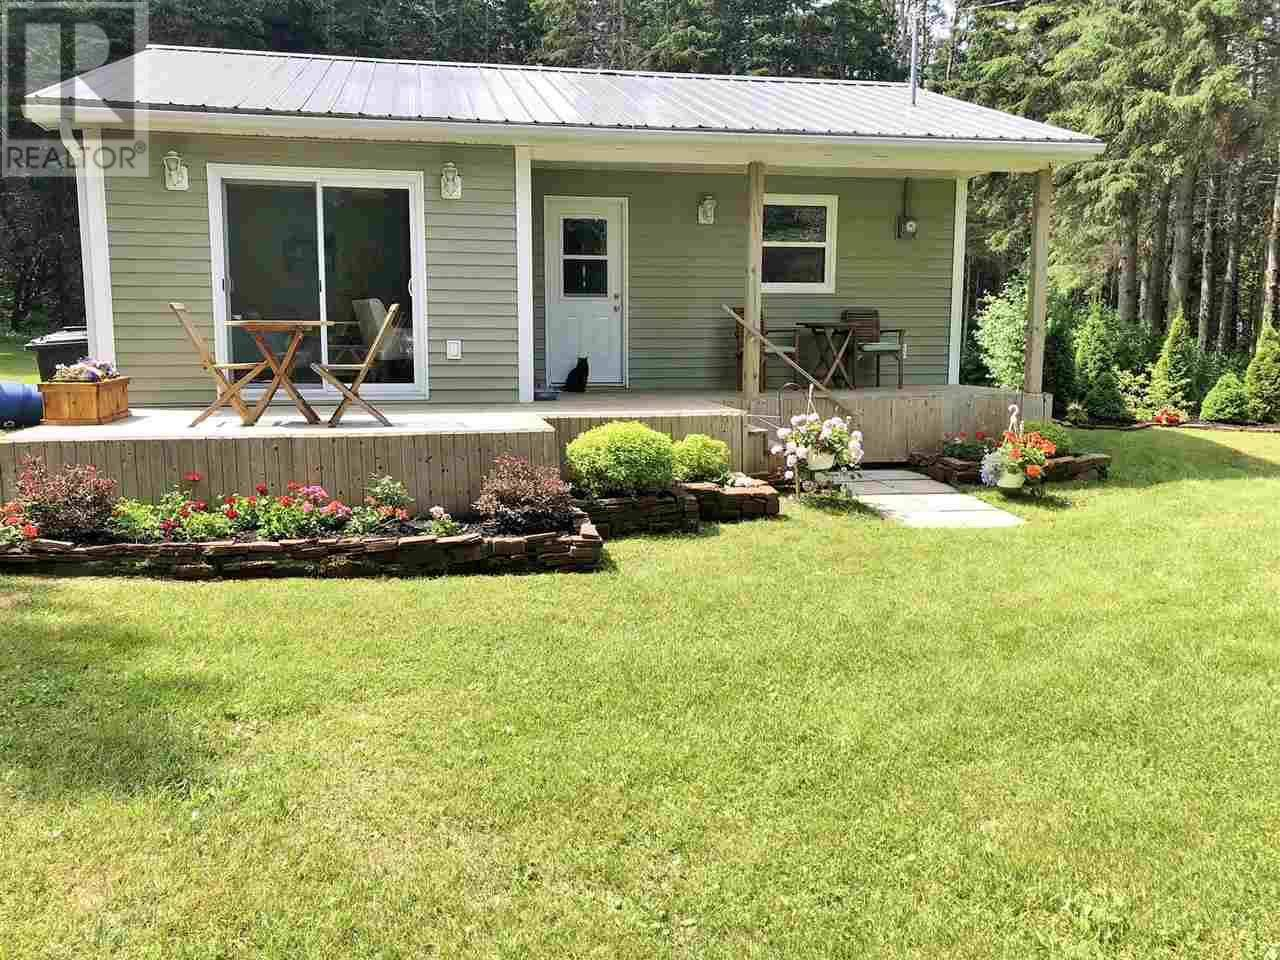 Residential property for sale at 21 Adams Dr Stanley Bridge Prince Edward Island - MLS: 202006500